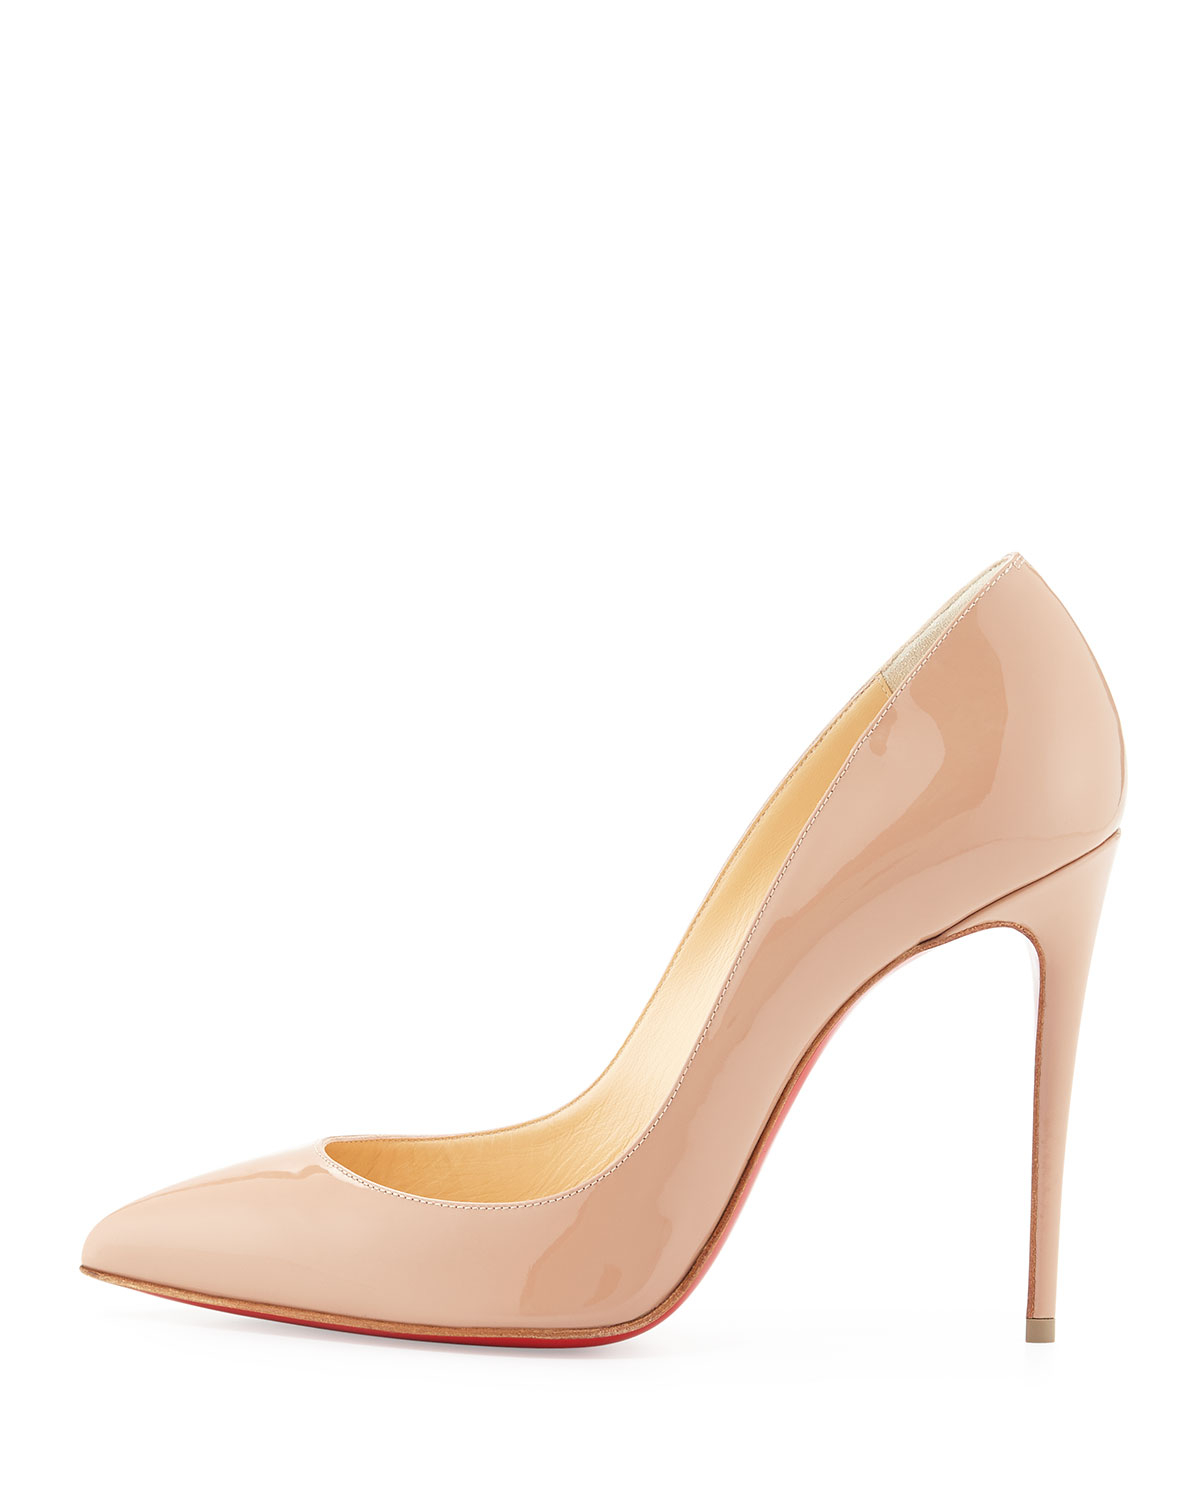 christian louboutin pigalle follies patent-leather pumps